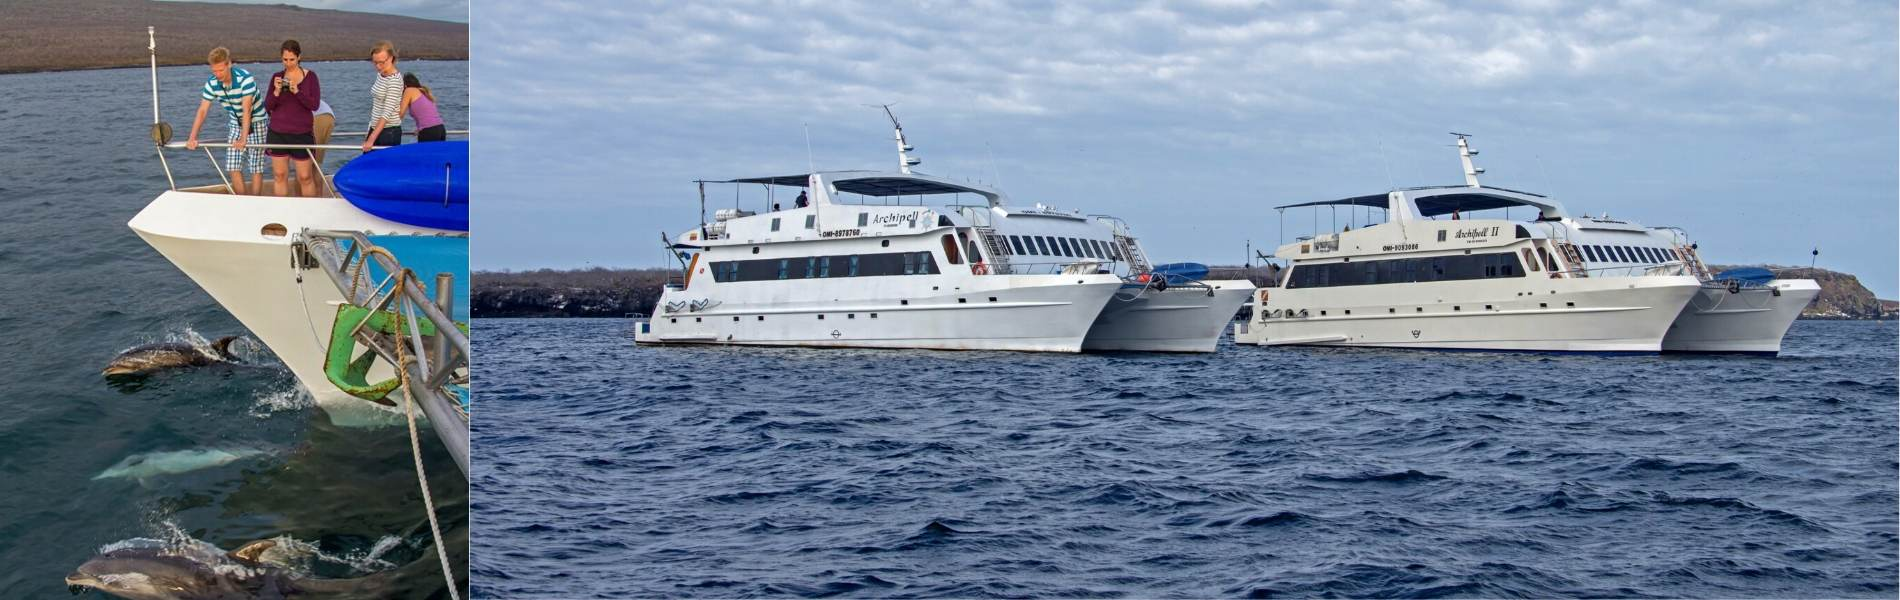 M/C Archipell II Galapagos Cruise